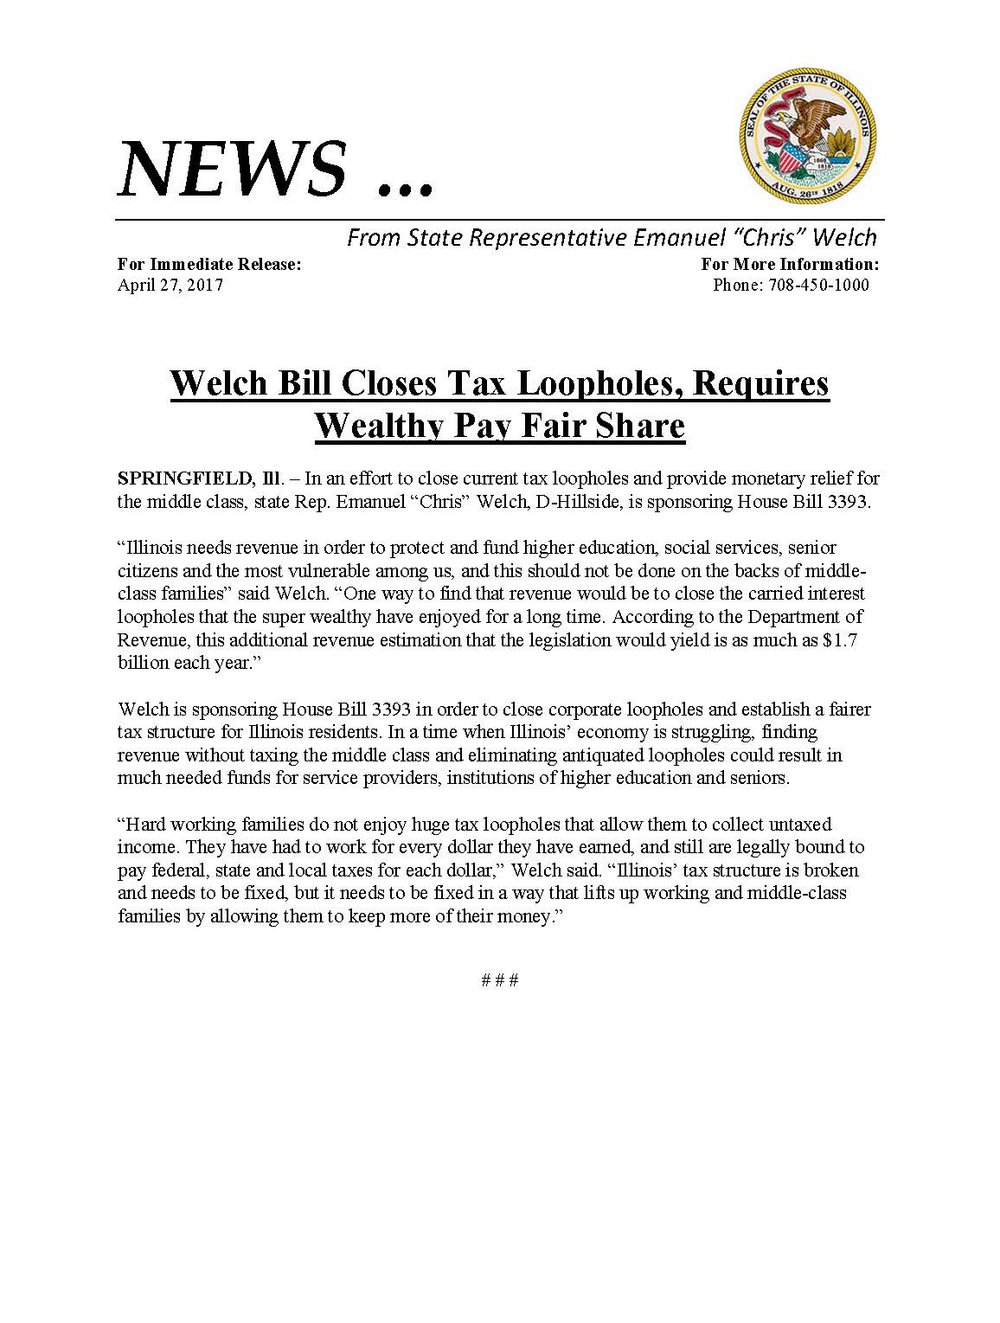 Welch Bill Closes Tax Loopholes  (April 27, 2017)